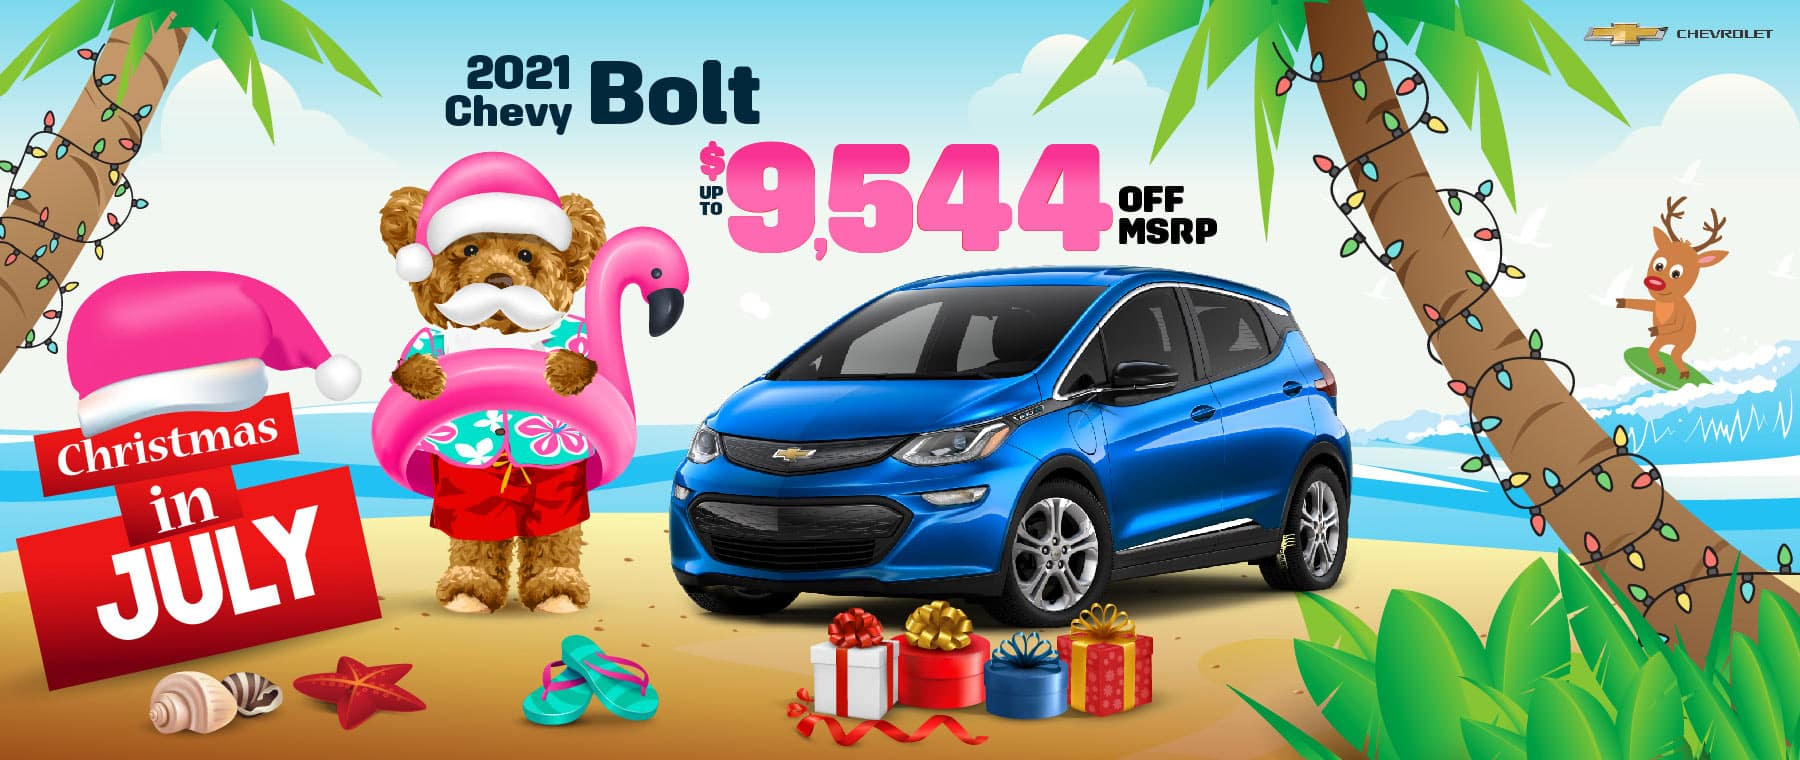 2021 Chevy Bolt EV - up to $9544 off MSRP